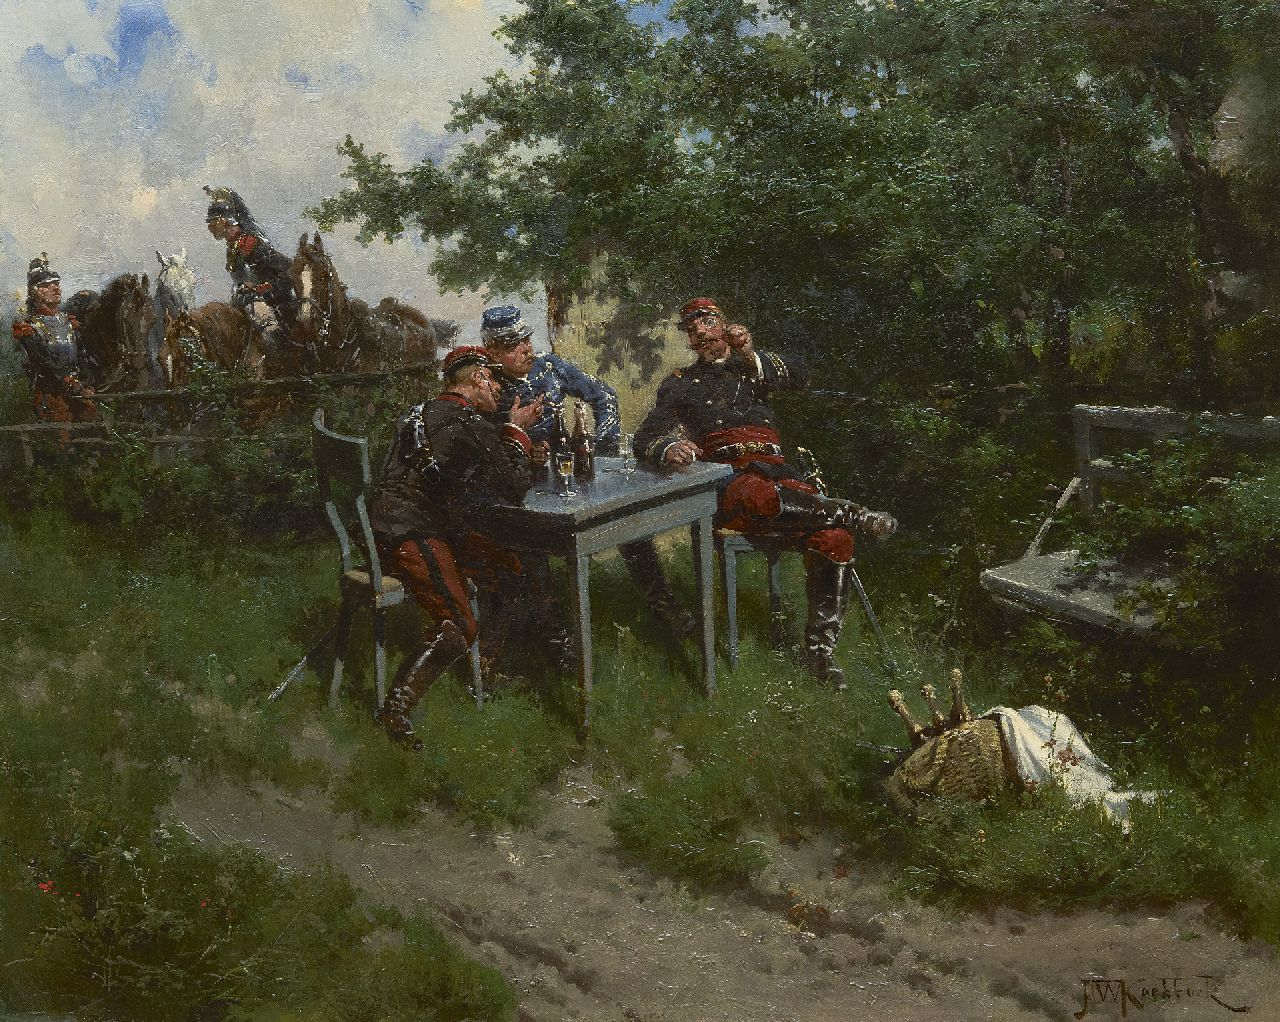 Koekkoek H.W.  | Hermanus Willem Koekkoek, French officers taking a break, oil on canvas 43.5 x 53.2 cm, signed l.r. and painted in 1892